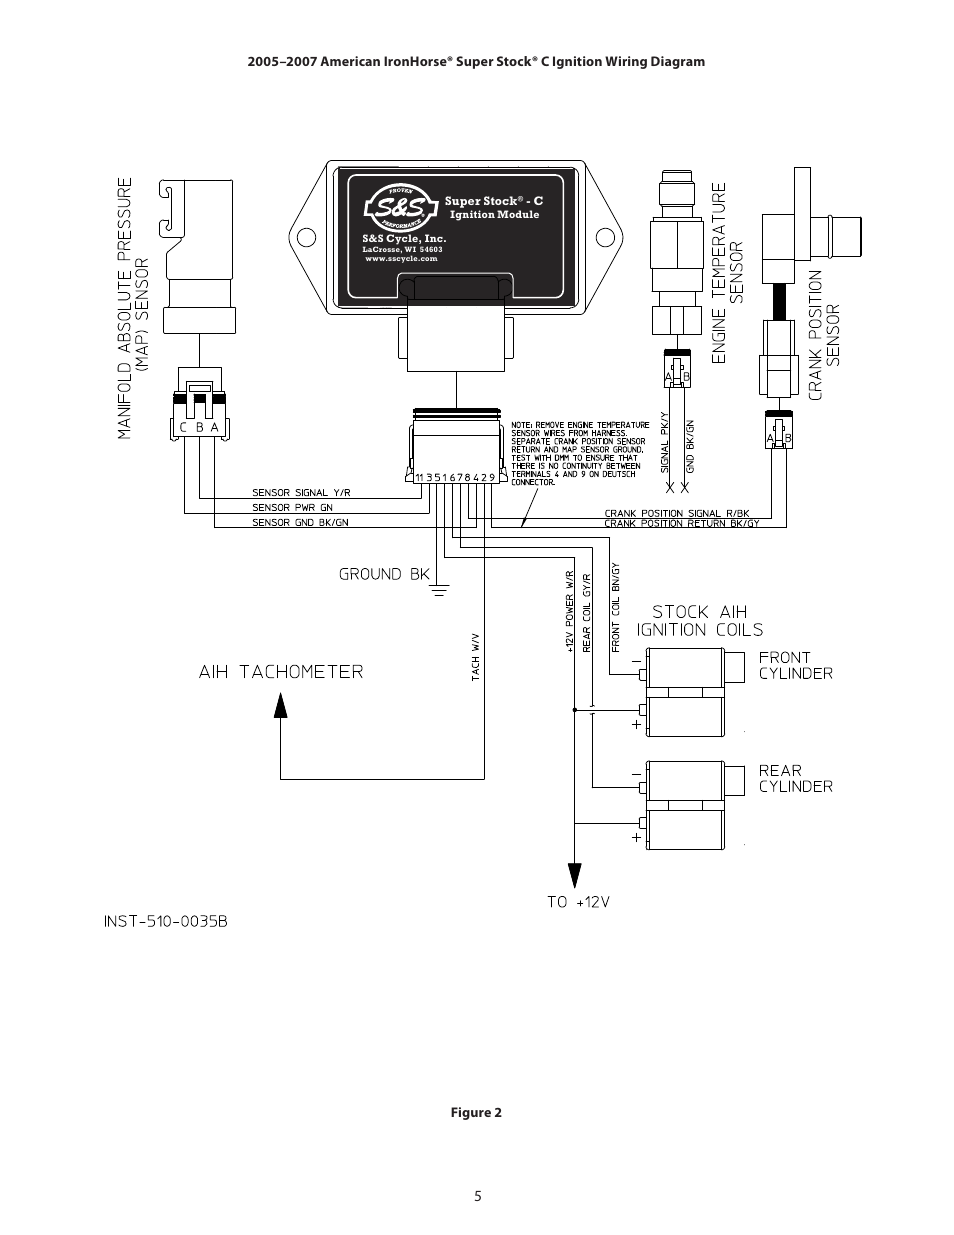 Wiring Diagram For 2003 Texas Ironhorse Motorcycle